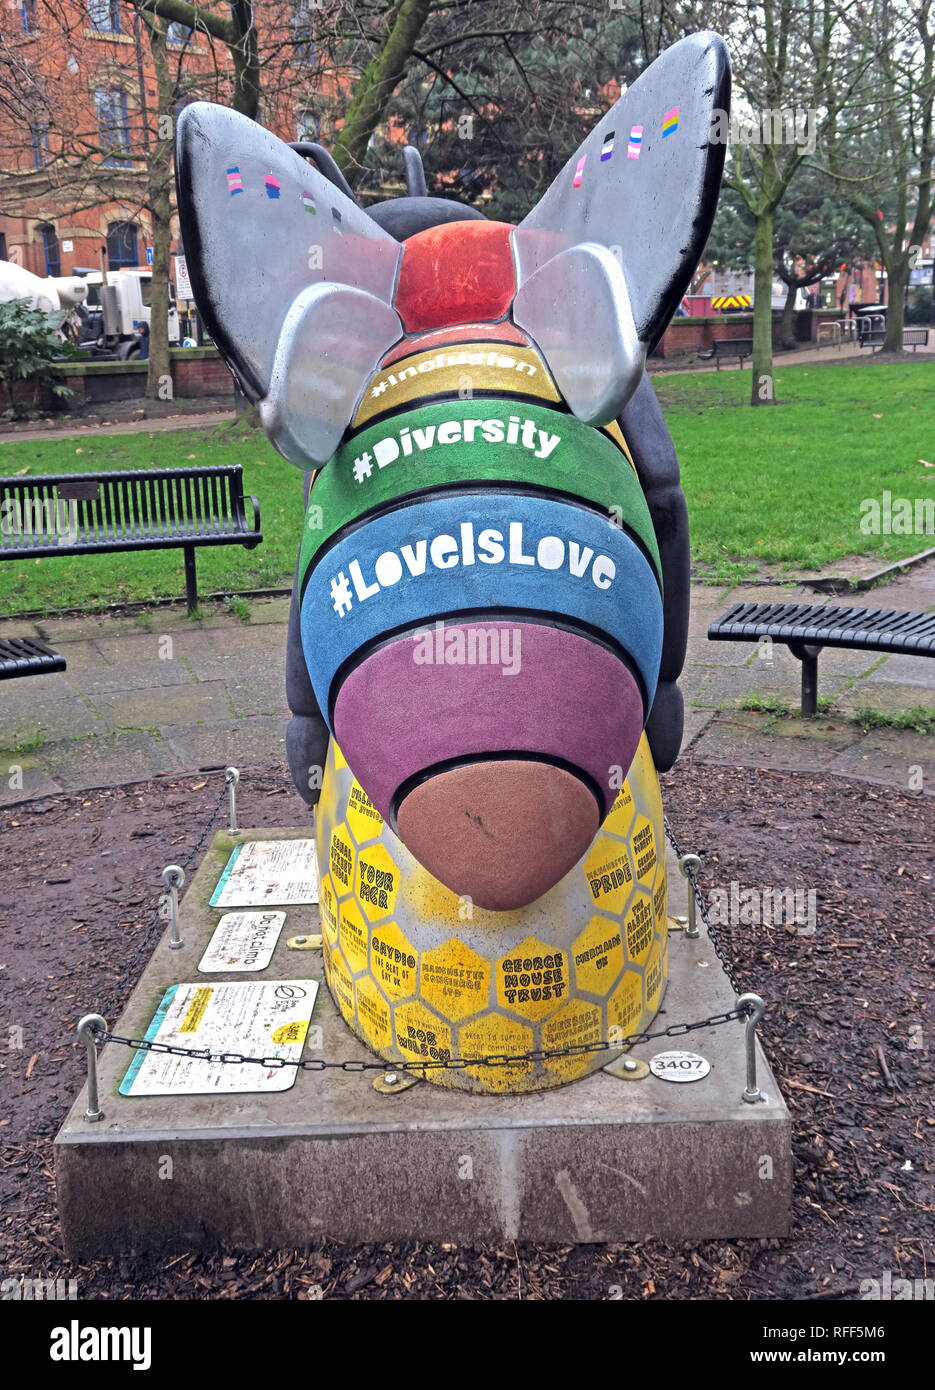 Manchester,City centre,@HotpixUK,HotpixUK,GoTonySmith,North West England,UK,England,Canal St,gay,village,Sackville,LGBT,community,Gay Bee,Love Is Love,Alan Turing,Alan,Turing,LBGT Community,LGBTQ,Manchester M1 3HB,M1,rainbow,rainbow bee,Turing head,sponsored,LGBTQ+ community Bee in Sackville Gardens,LGBTQ+ community,Bee in Sackville Gardens,LGBTQ+,Sackville Gardens Bee,Bee in The City MCR,MCR,LGBT Foundation,Manchester Pride,Heart of Manchesters Gay Village,Queen Bee,CJTaylord Art Ben Sedman Photography,Wild in Art